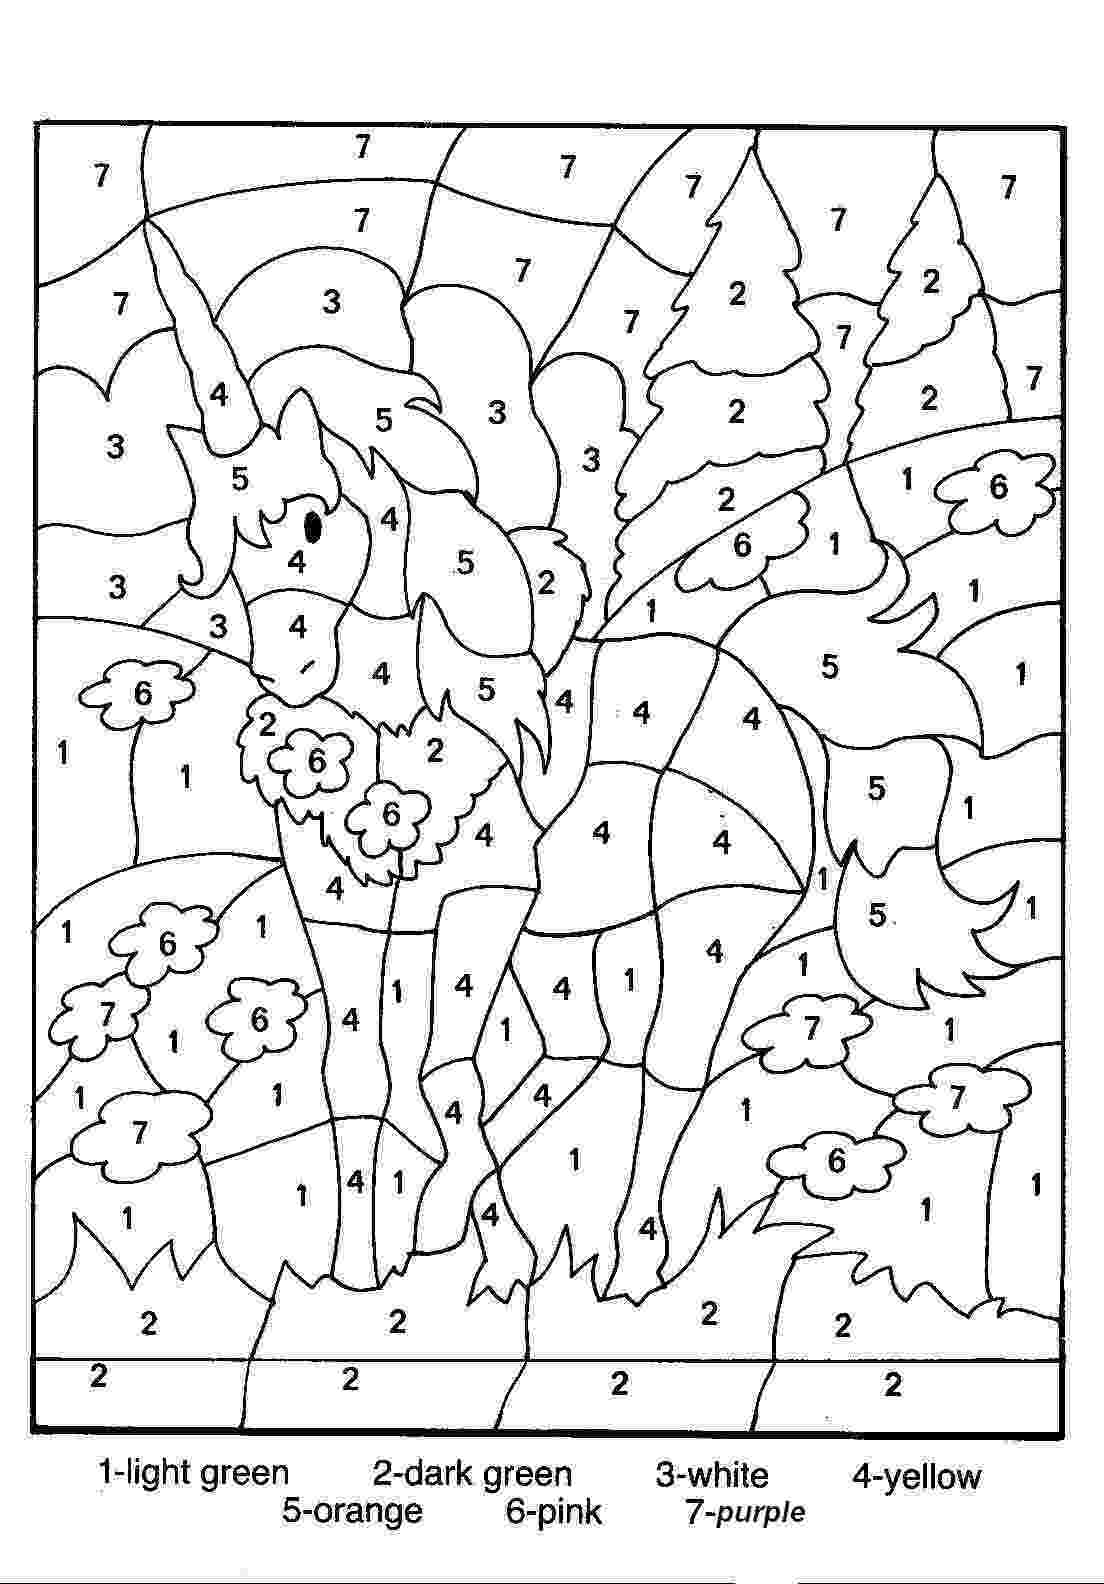 colouring for adults by numbers printable color by number for adults color by number numbers adults for by colouring